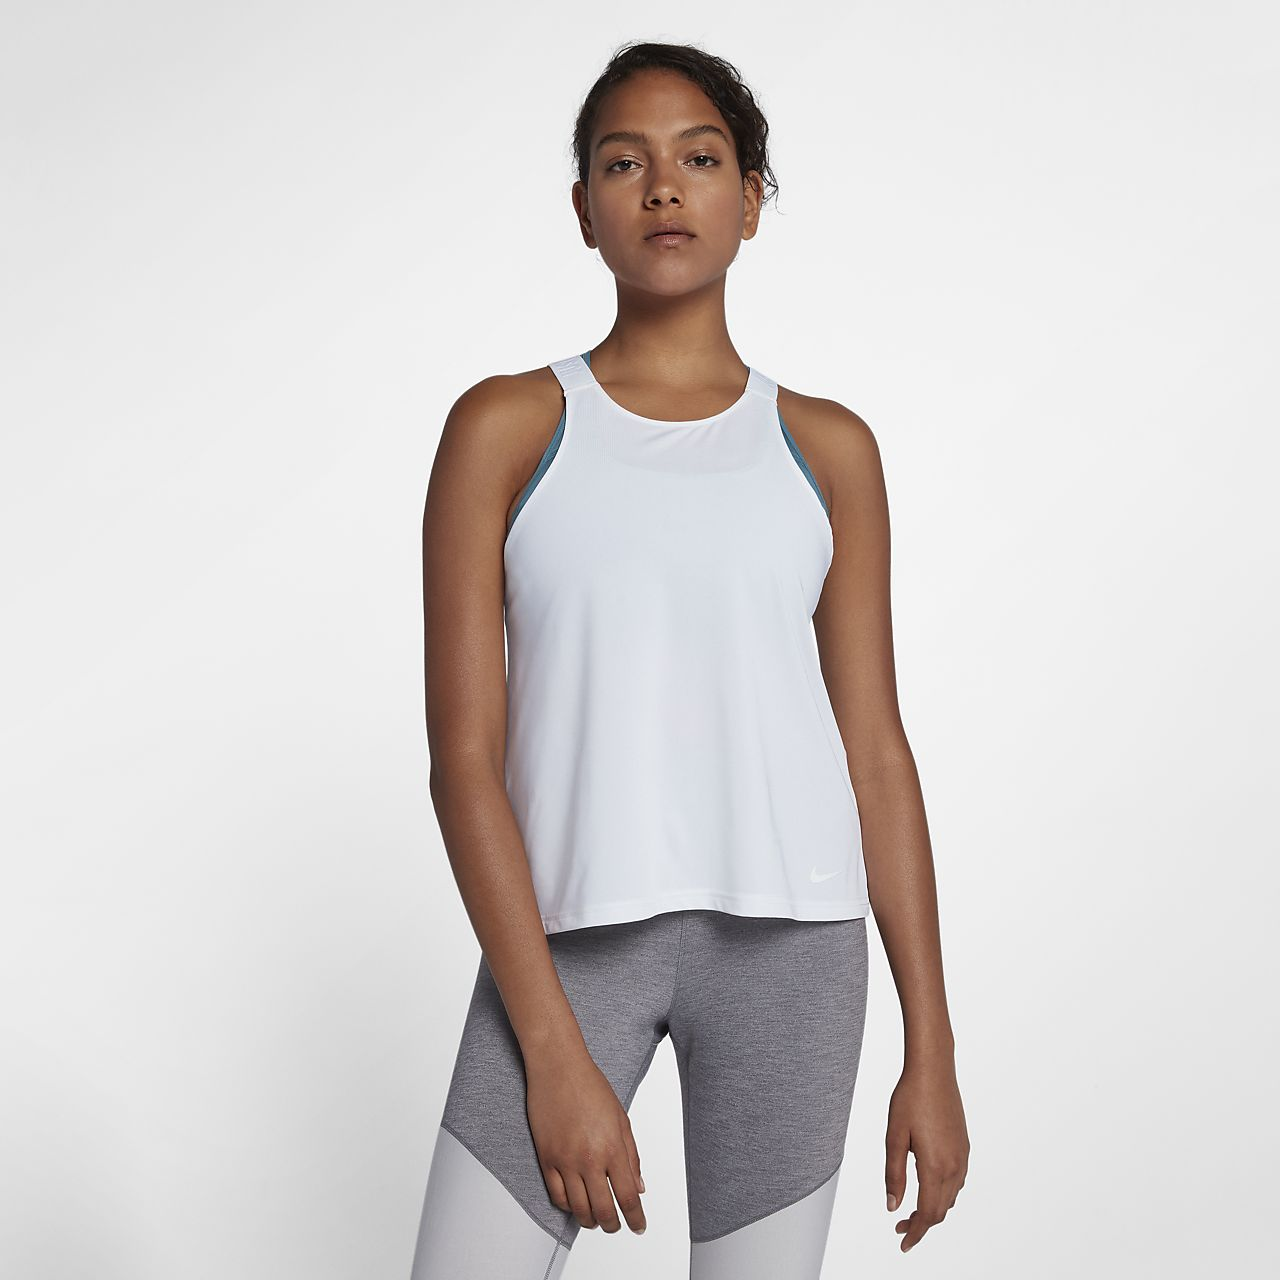 ... Nike Dri-FIT Elevated Elastika Women's Training Tank